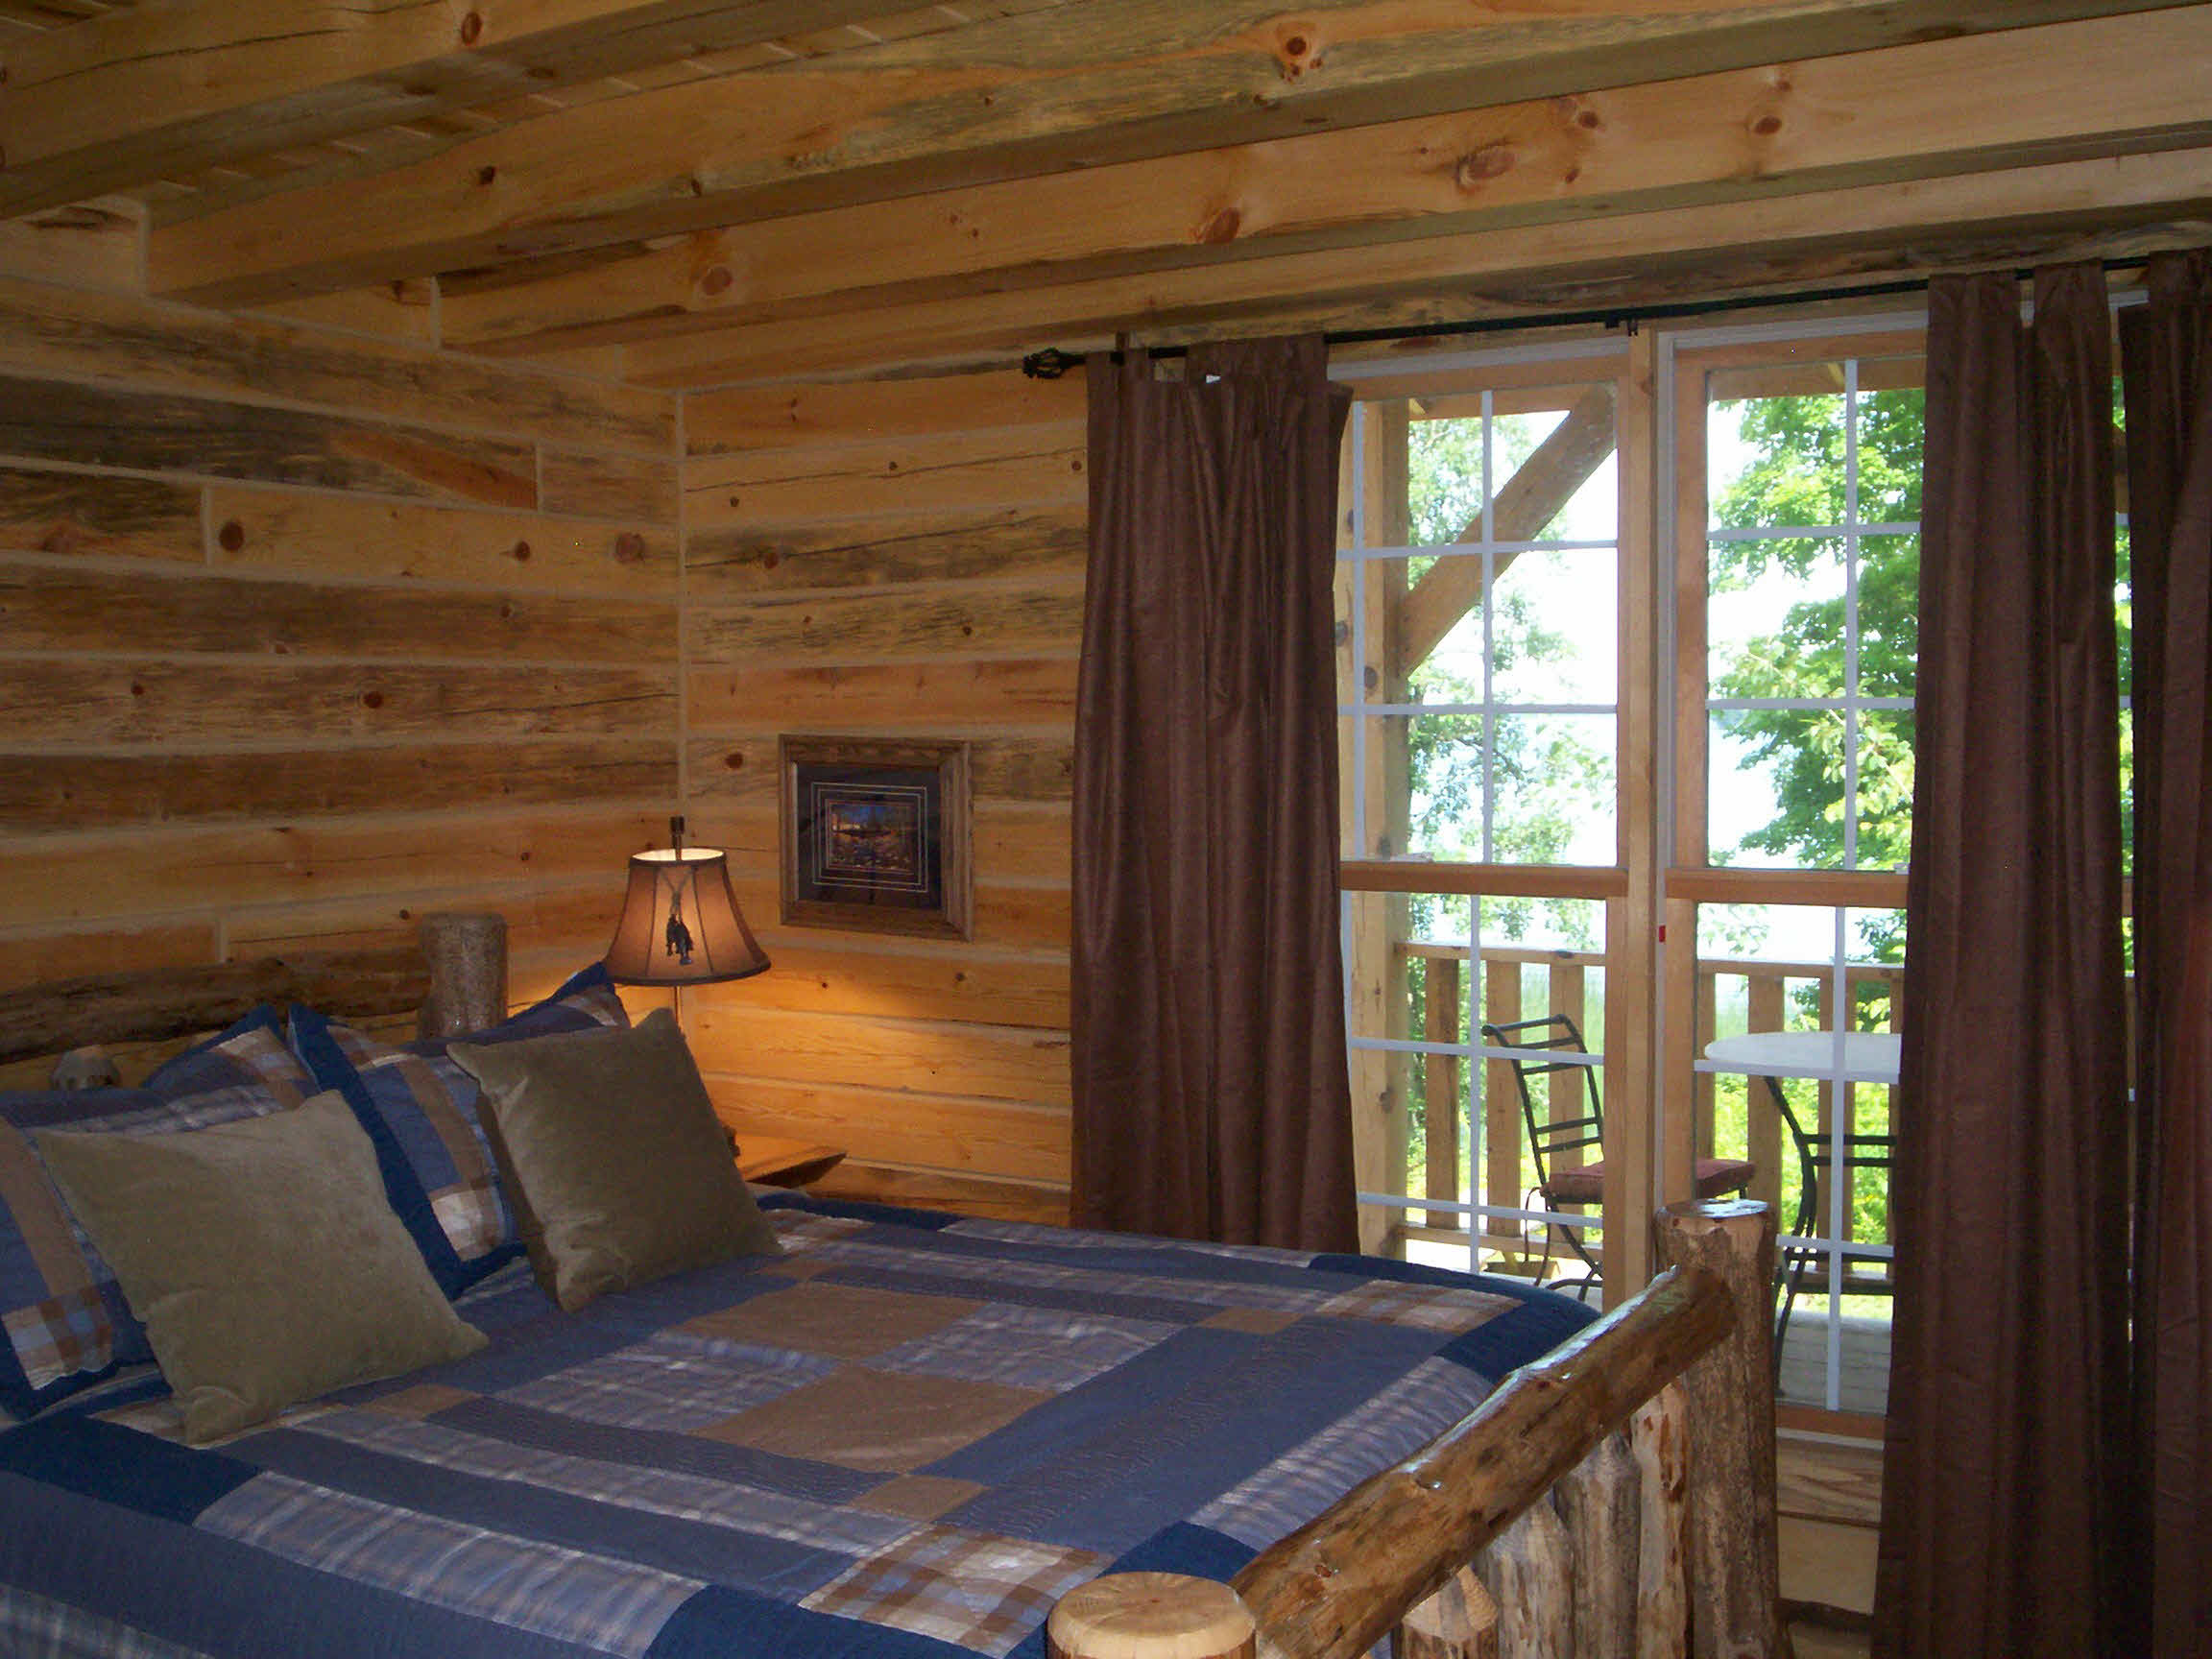 Lakeside Log Bedroom